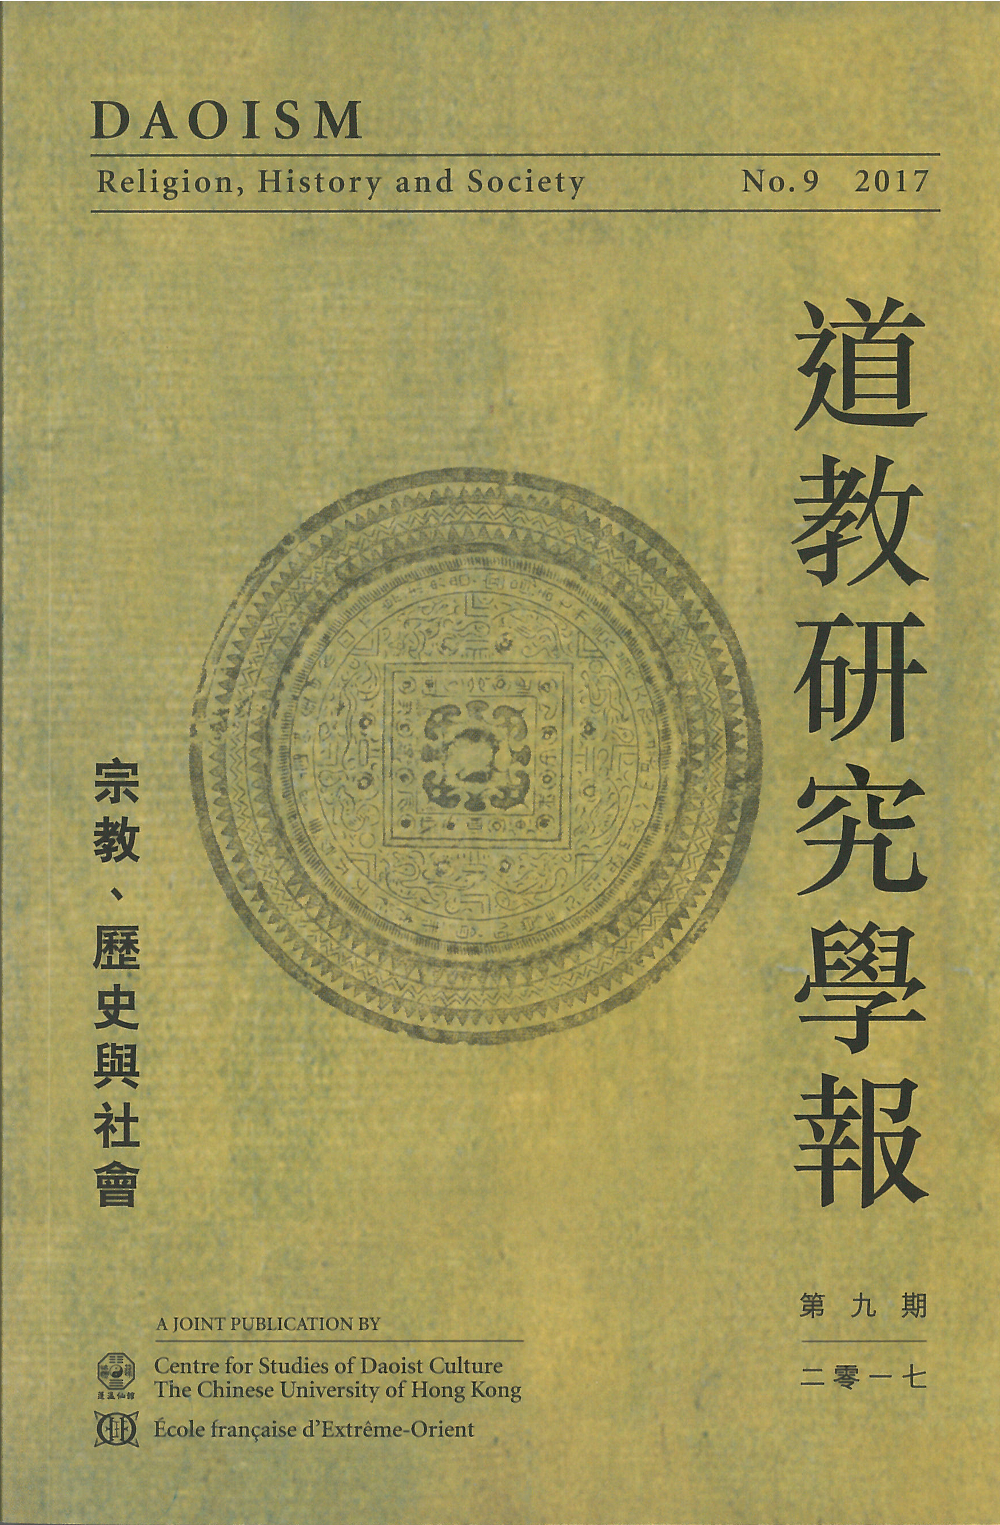 Daoism: Religion, History and Society 9 (2017)